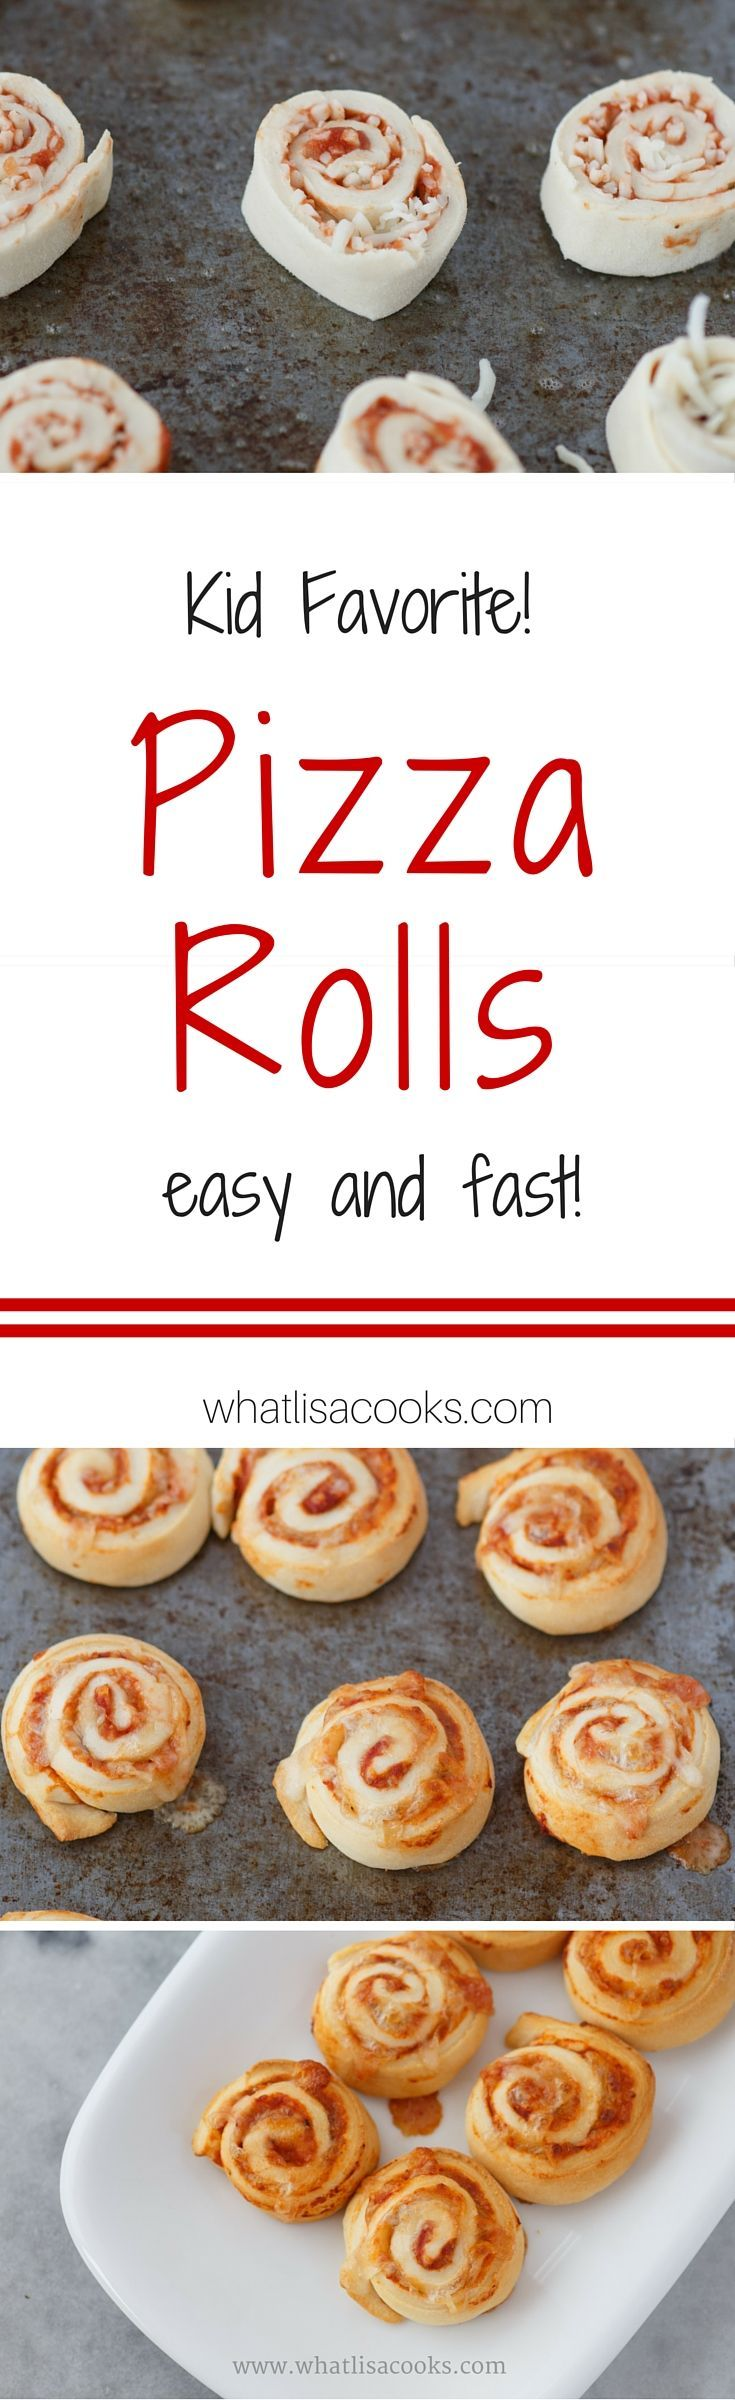 Homemade pizza rolls full of awesomeness!